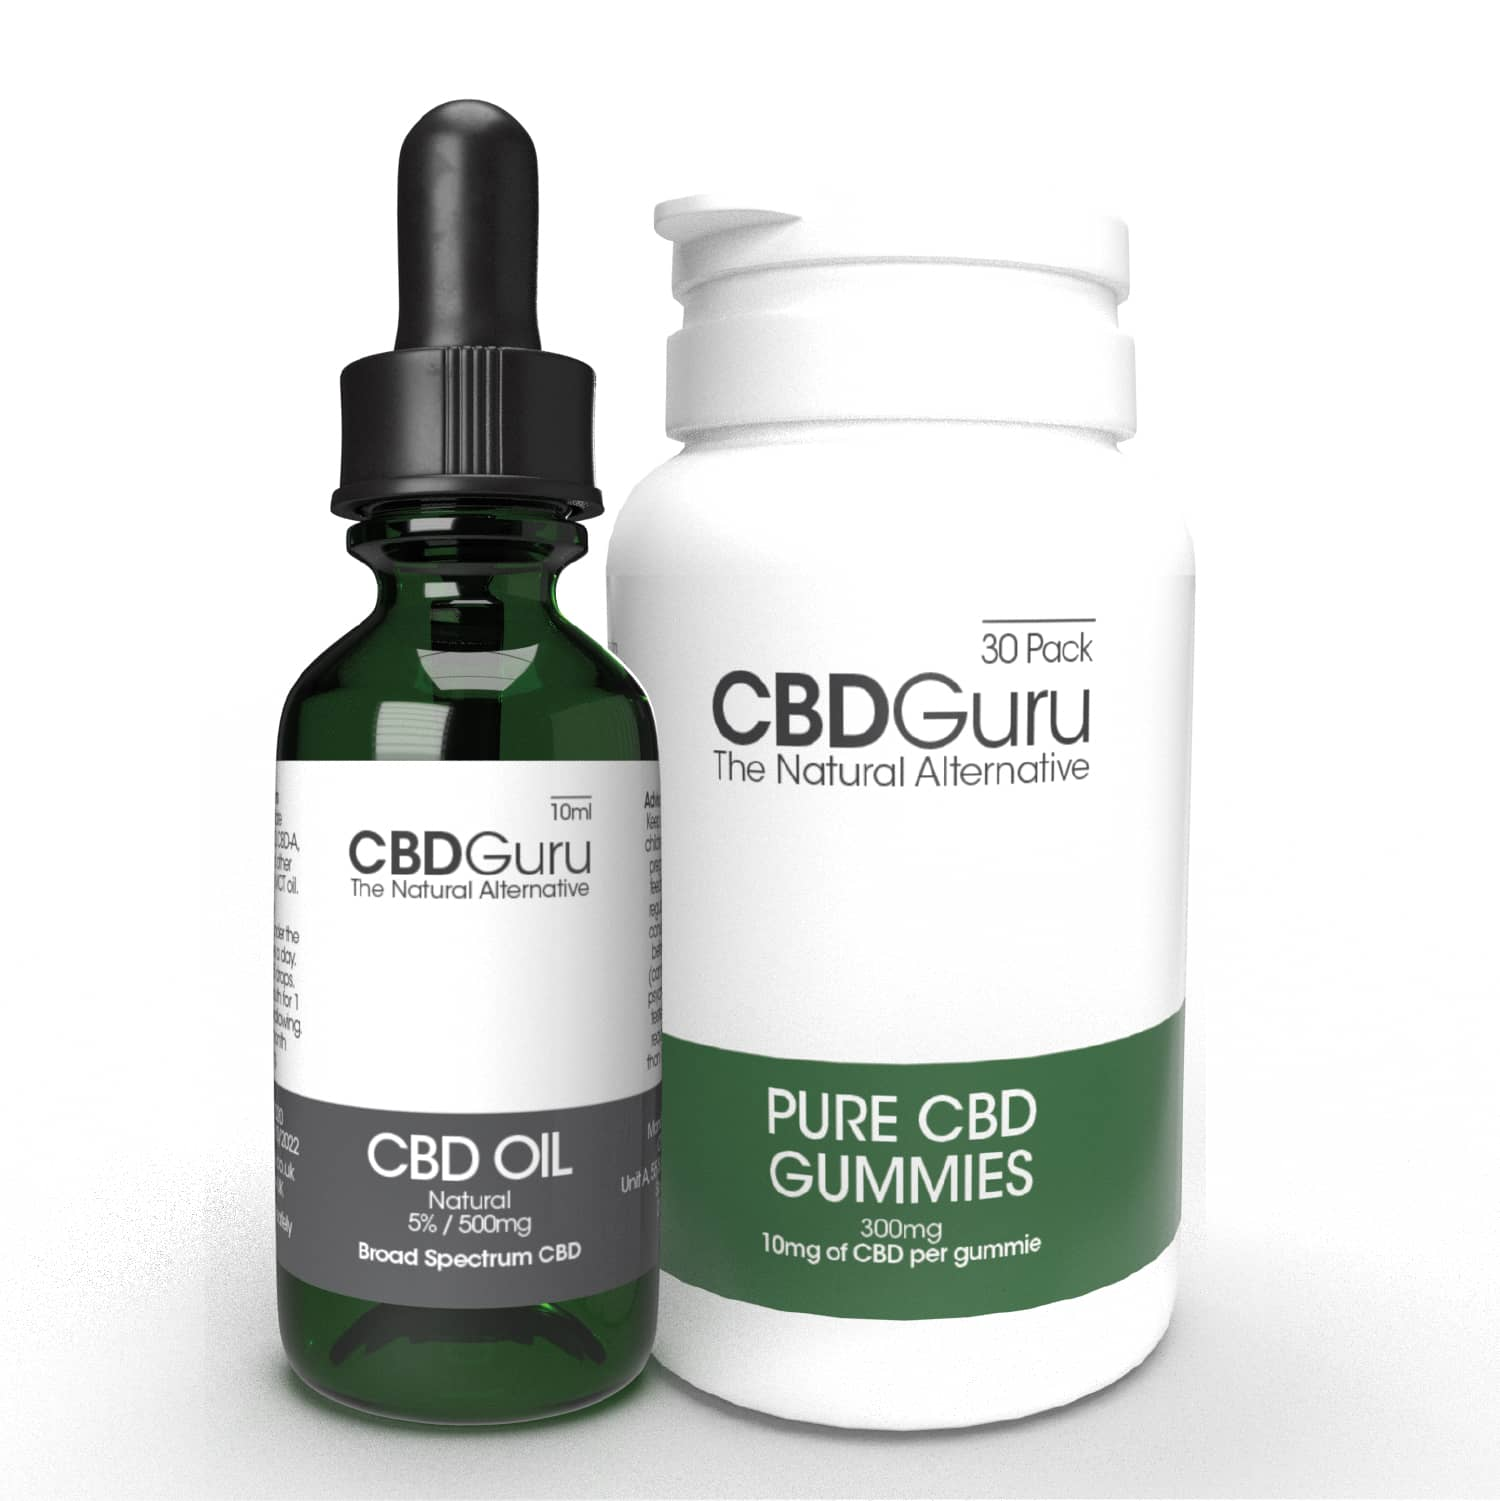 5% CBD Oil & 10mg CBD Gummies Bundle